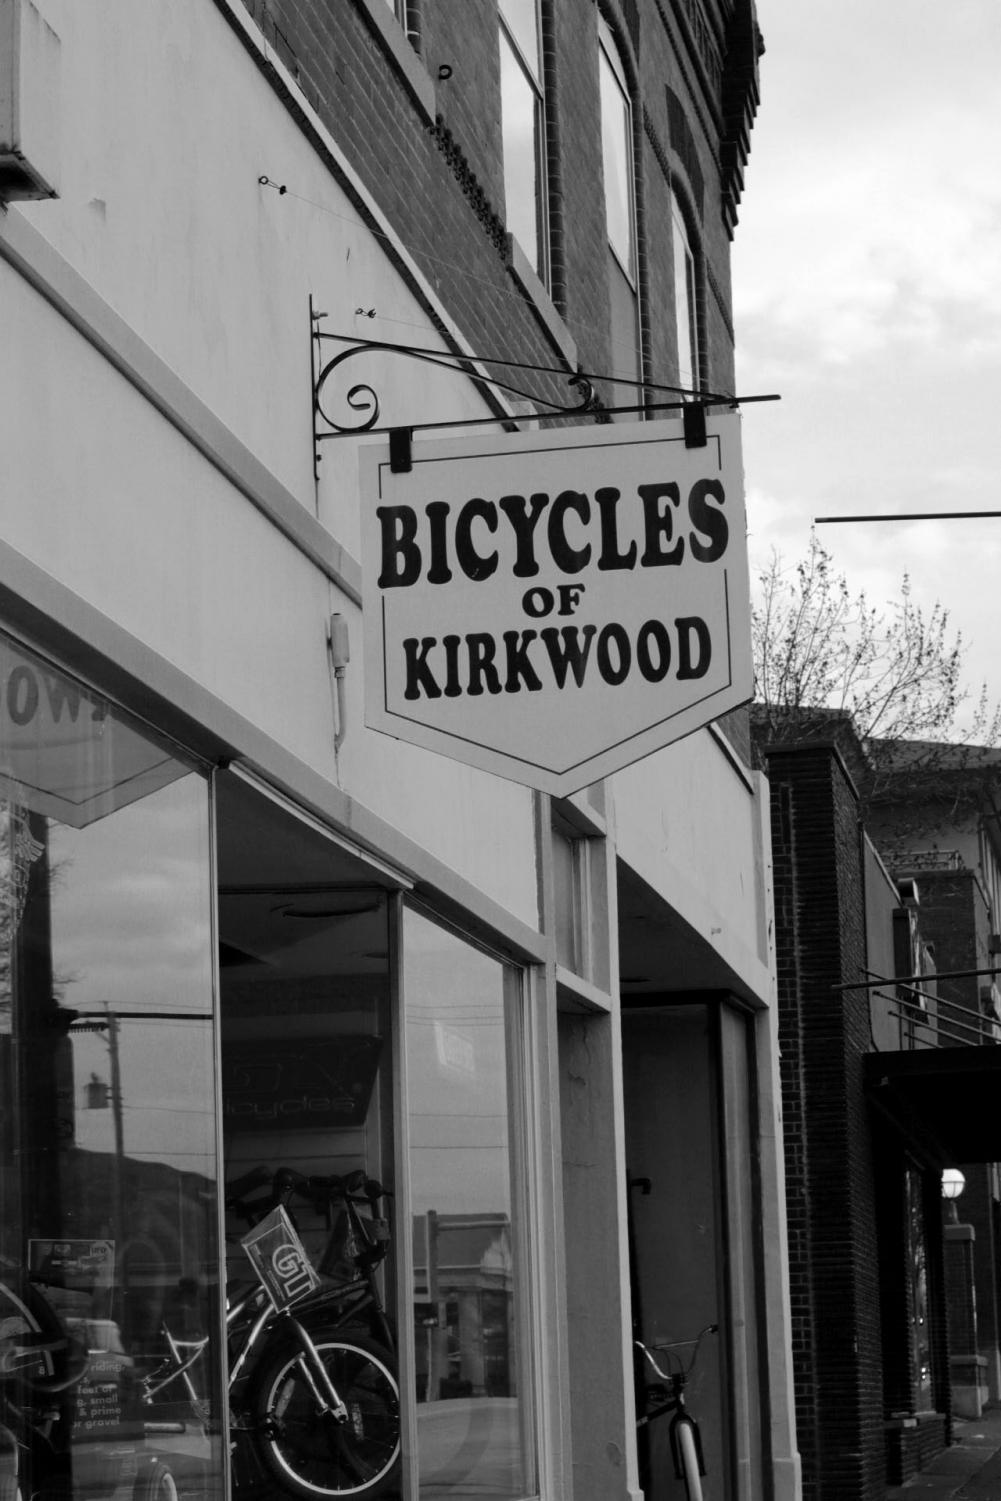 Stop+in+Bicycles+of+Kirkwood+and+take+a+ride+around+Kirkwood.+